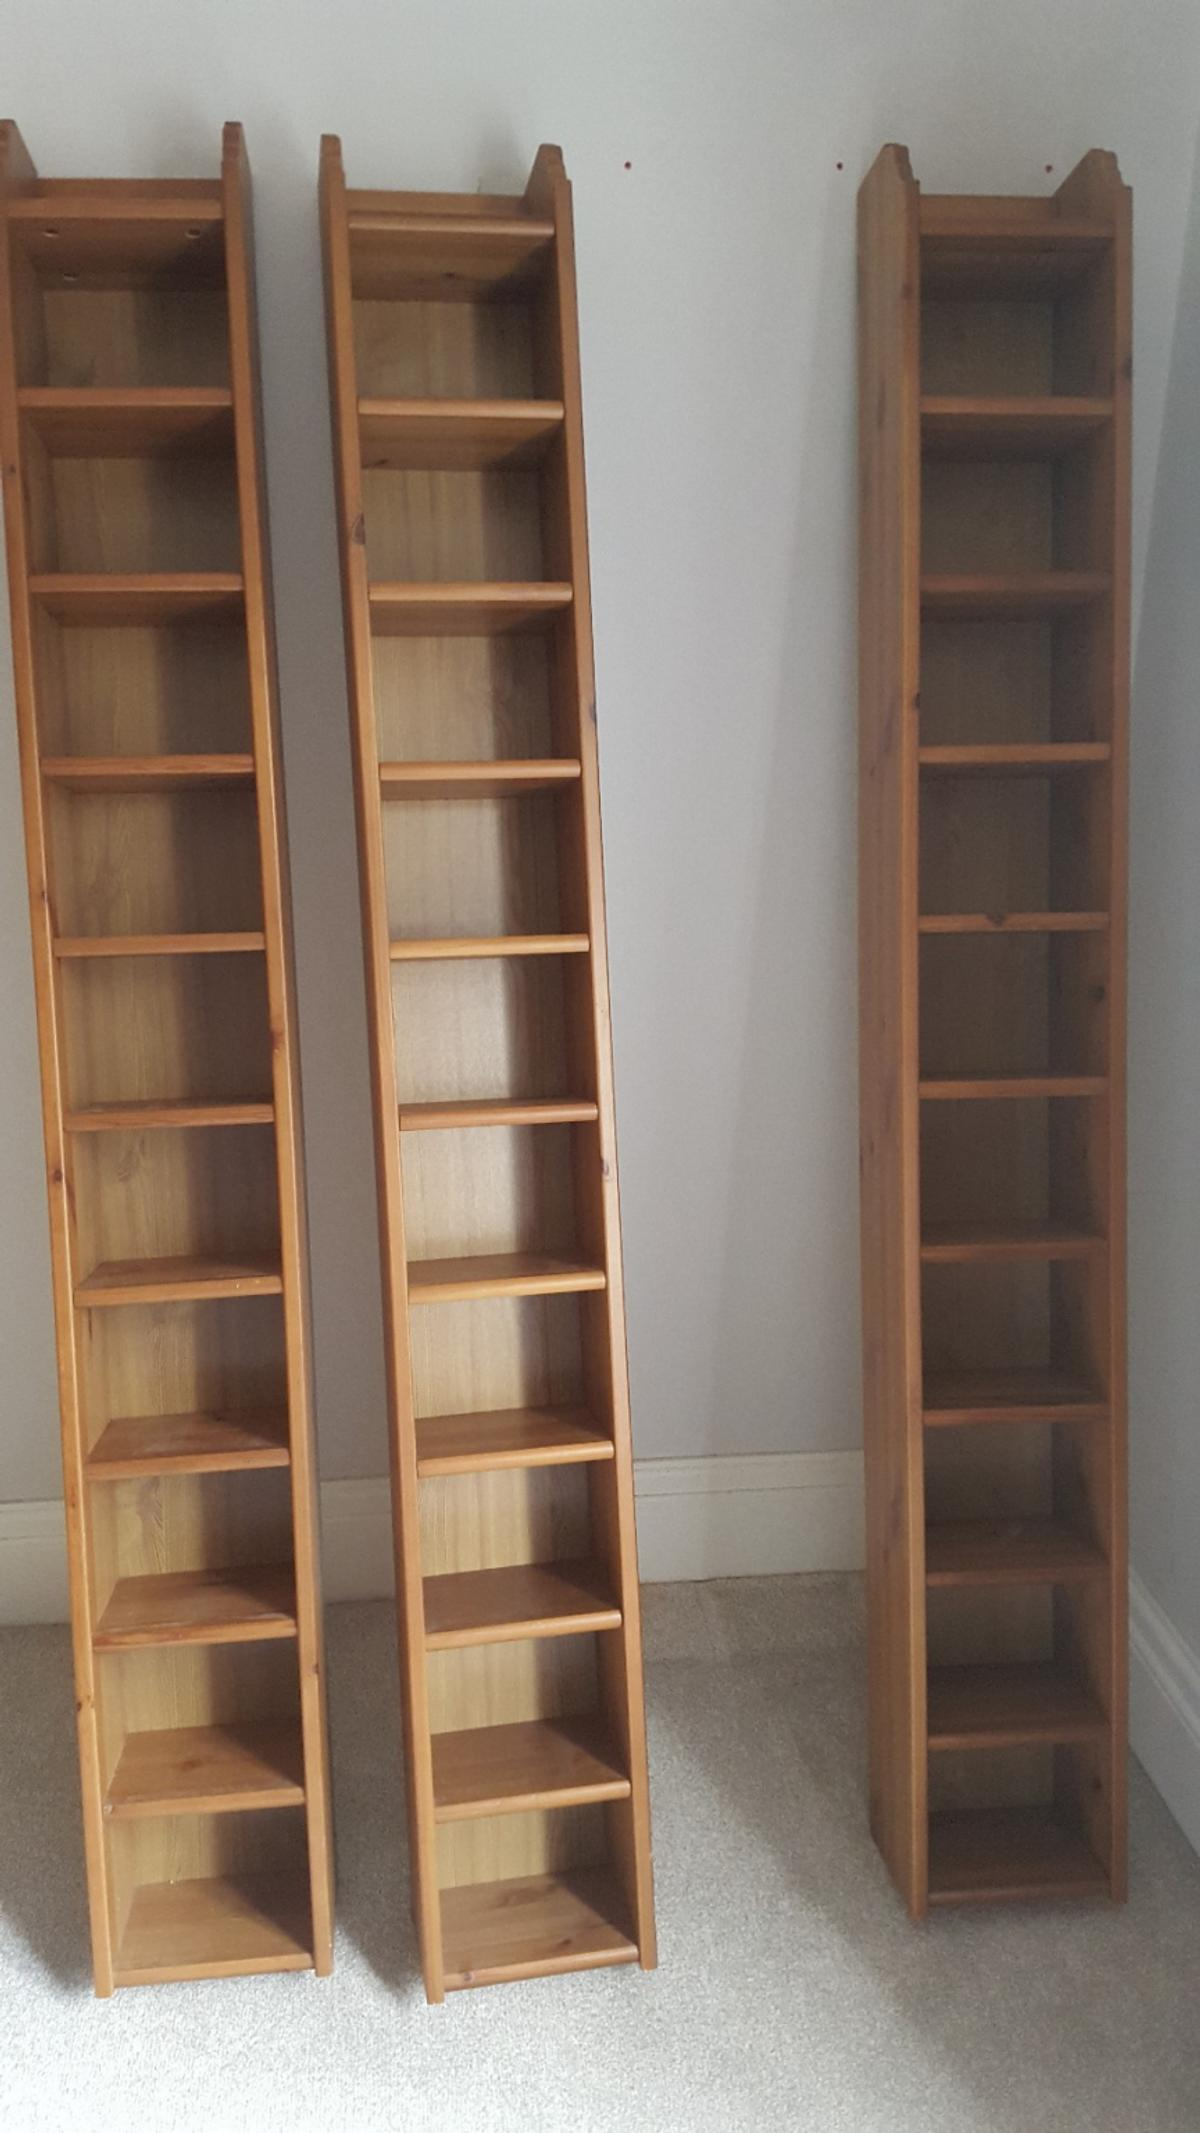 3 Ikea Leksvik Cd Tower Shelf Storage Pine In Nw2 Brent For 39 99 For Sale Shpock